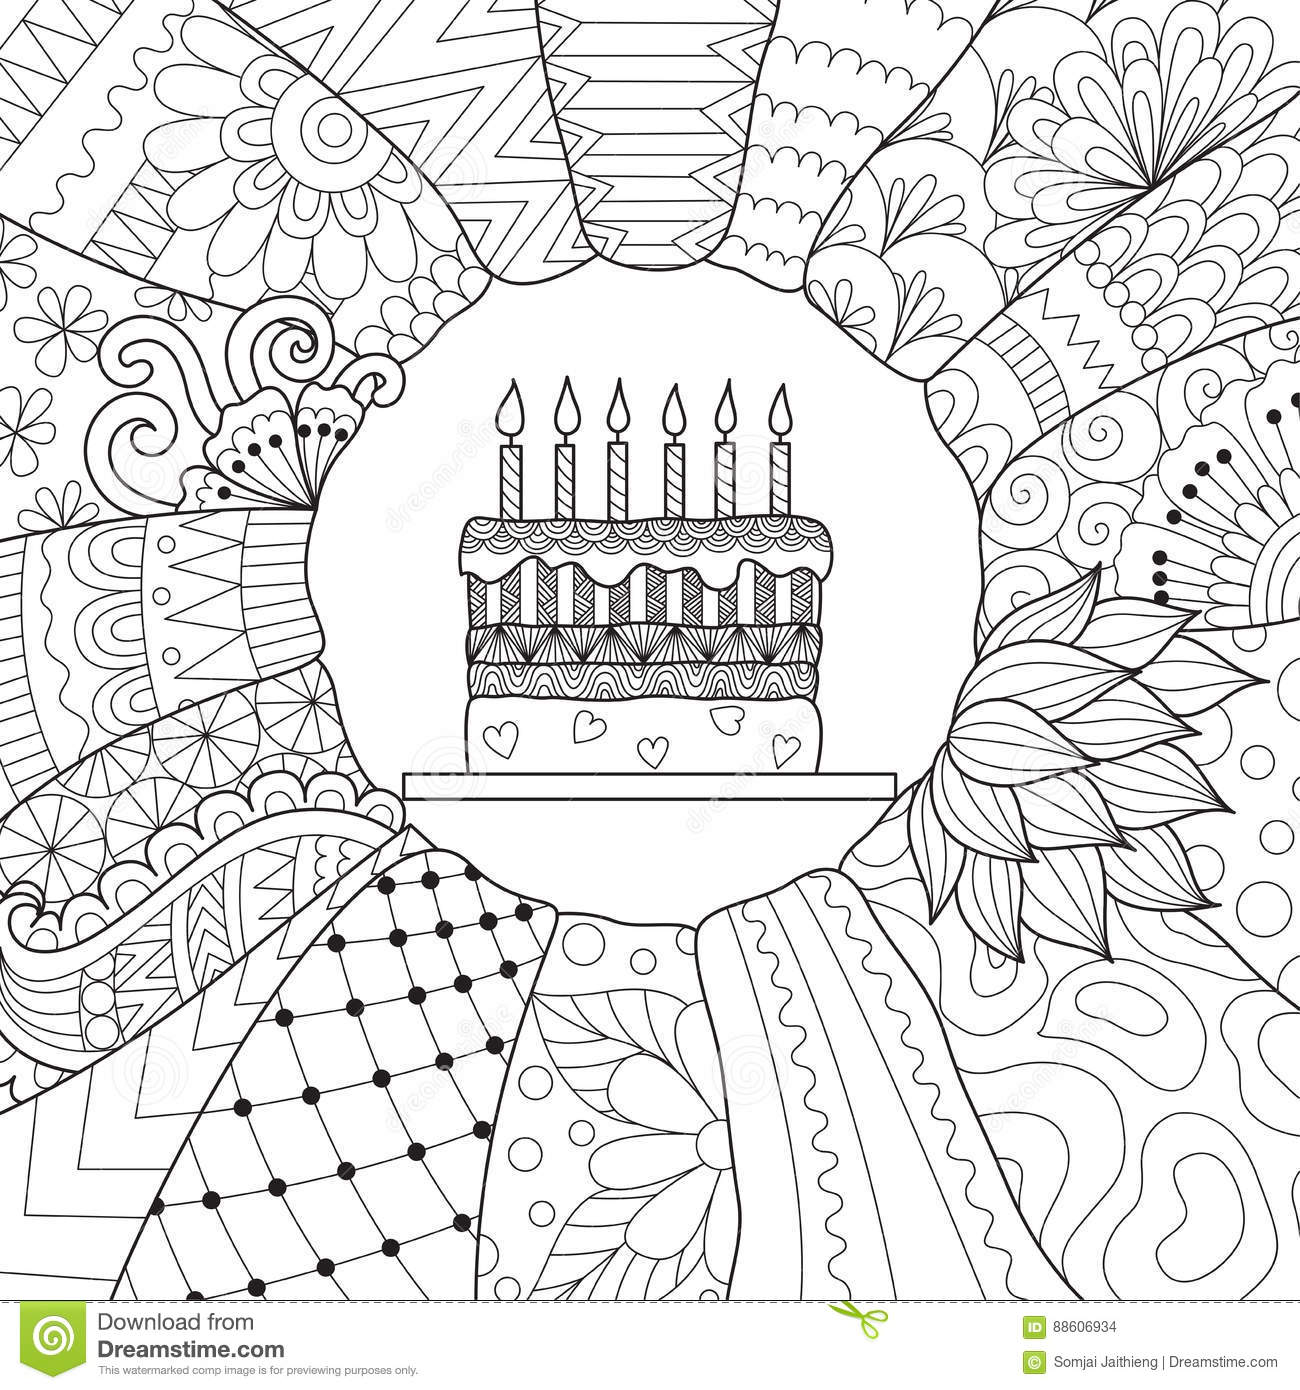 Birthday cake stock vector. Illustration of book, coloring